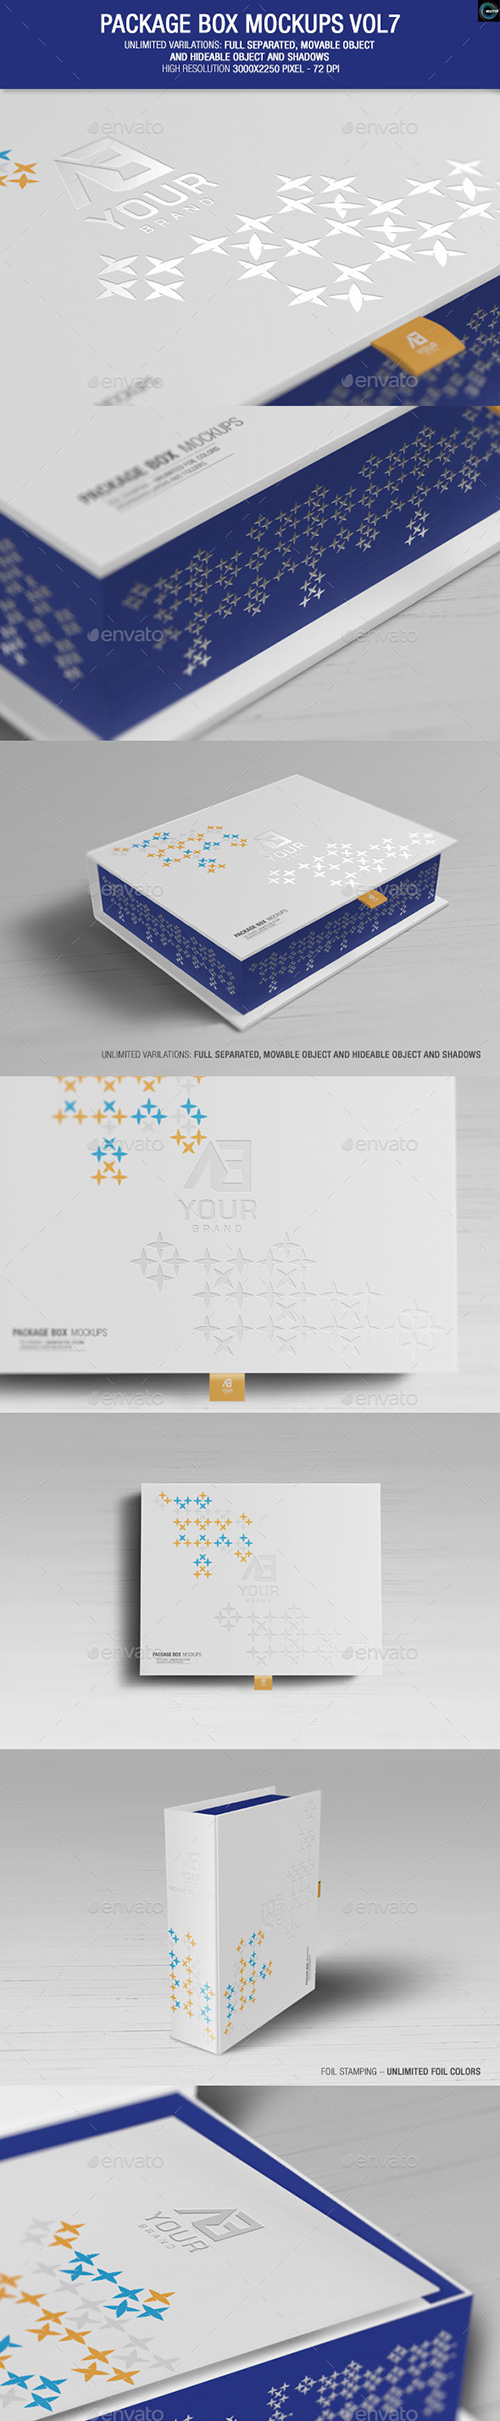 GraphicRiver - Package Box Mockups Vol.7 9924029